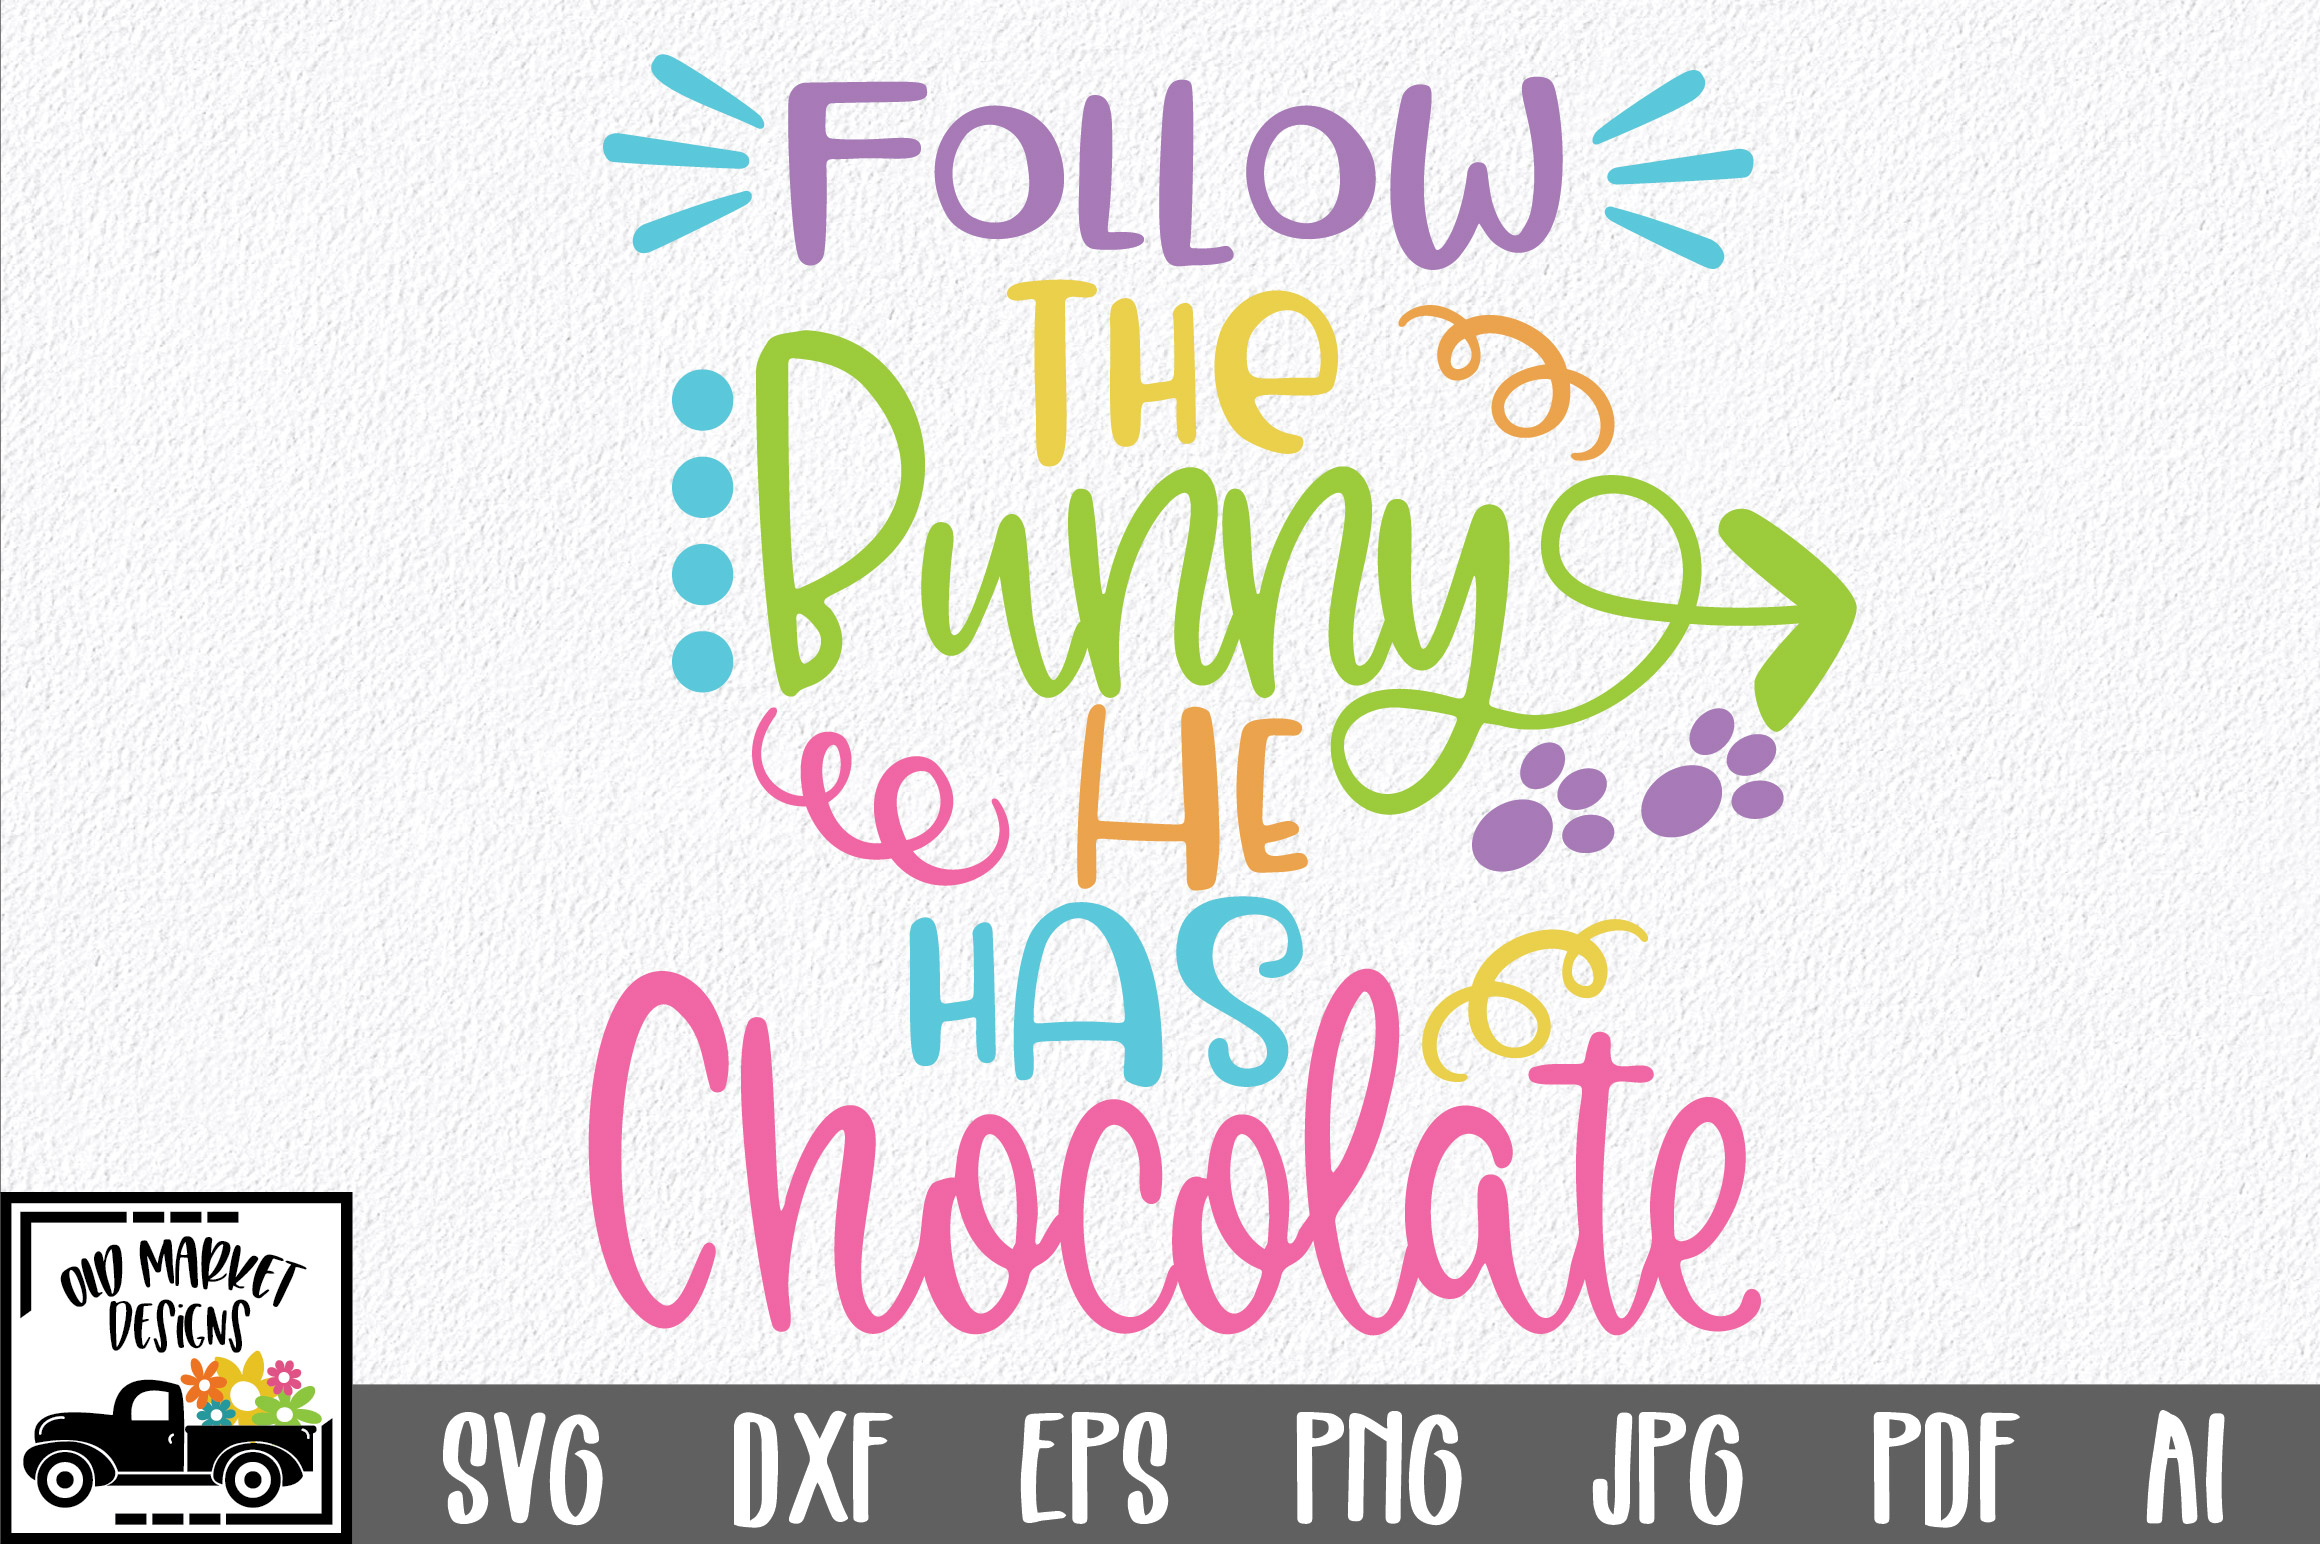 Download Free Follow The Bunny He Has Chocolate Graphic By Oldmarketdesigns for Cricut Explore, Silhouette and other cutting machines.